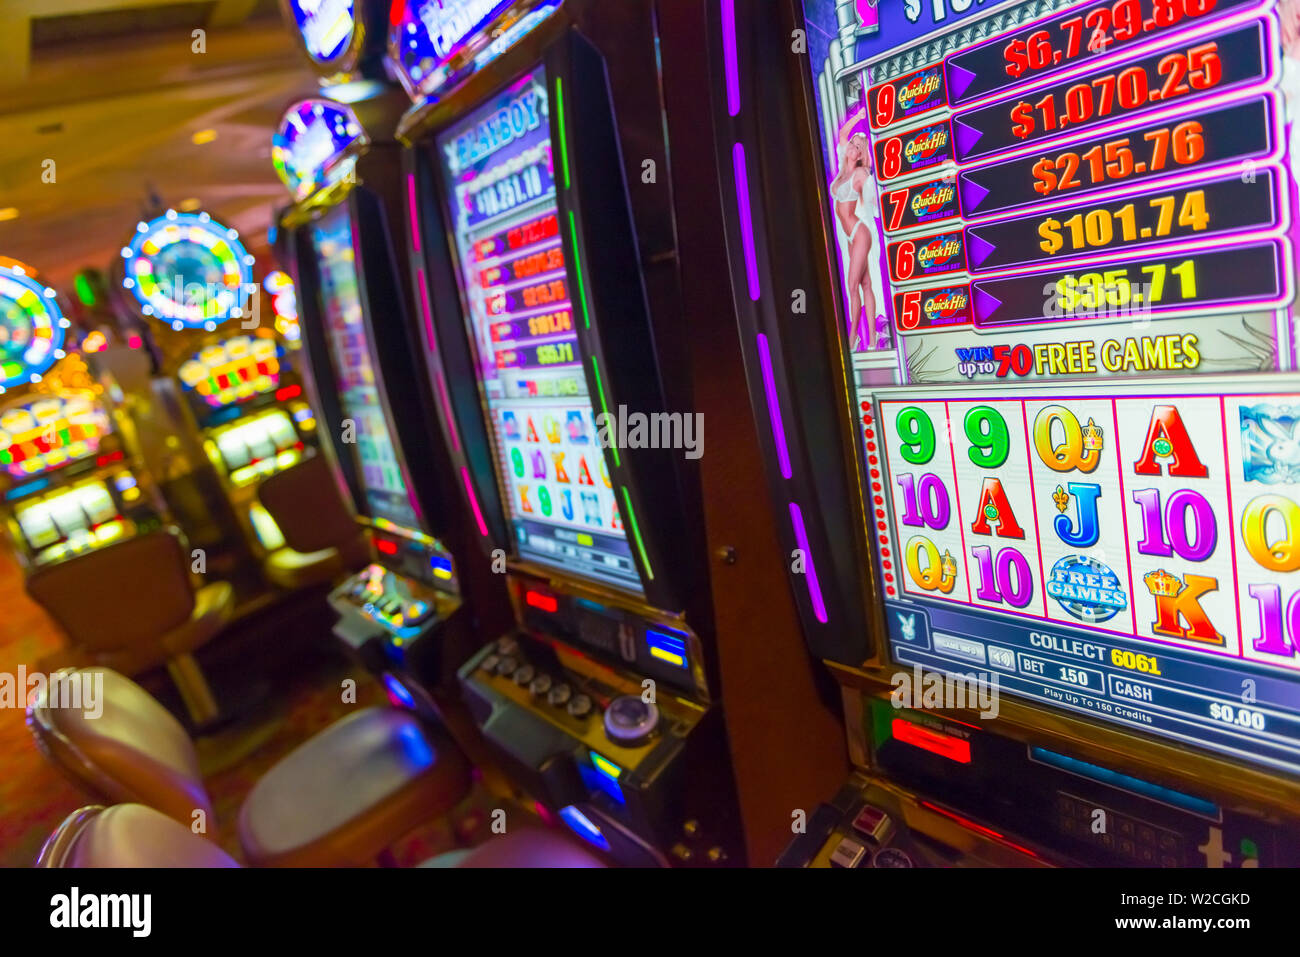 USA, Nevada, Las Vegas, Treasure Island Casino and Resort, Gaming Maschine Stockfoto